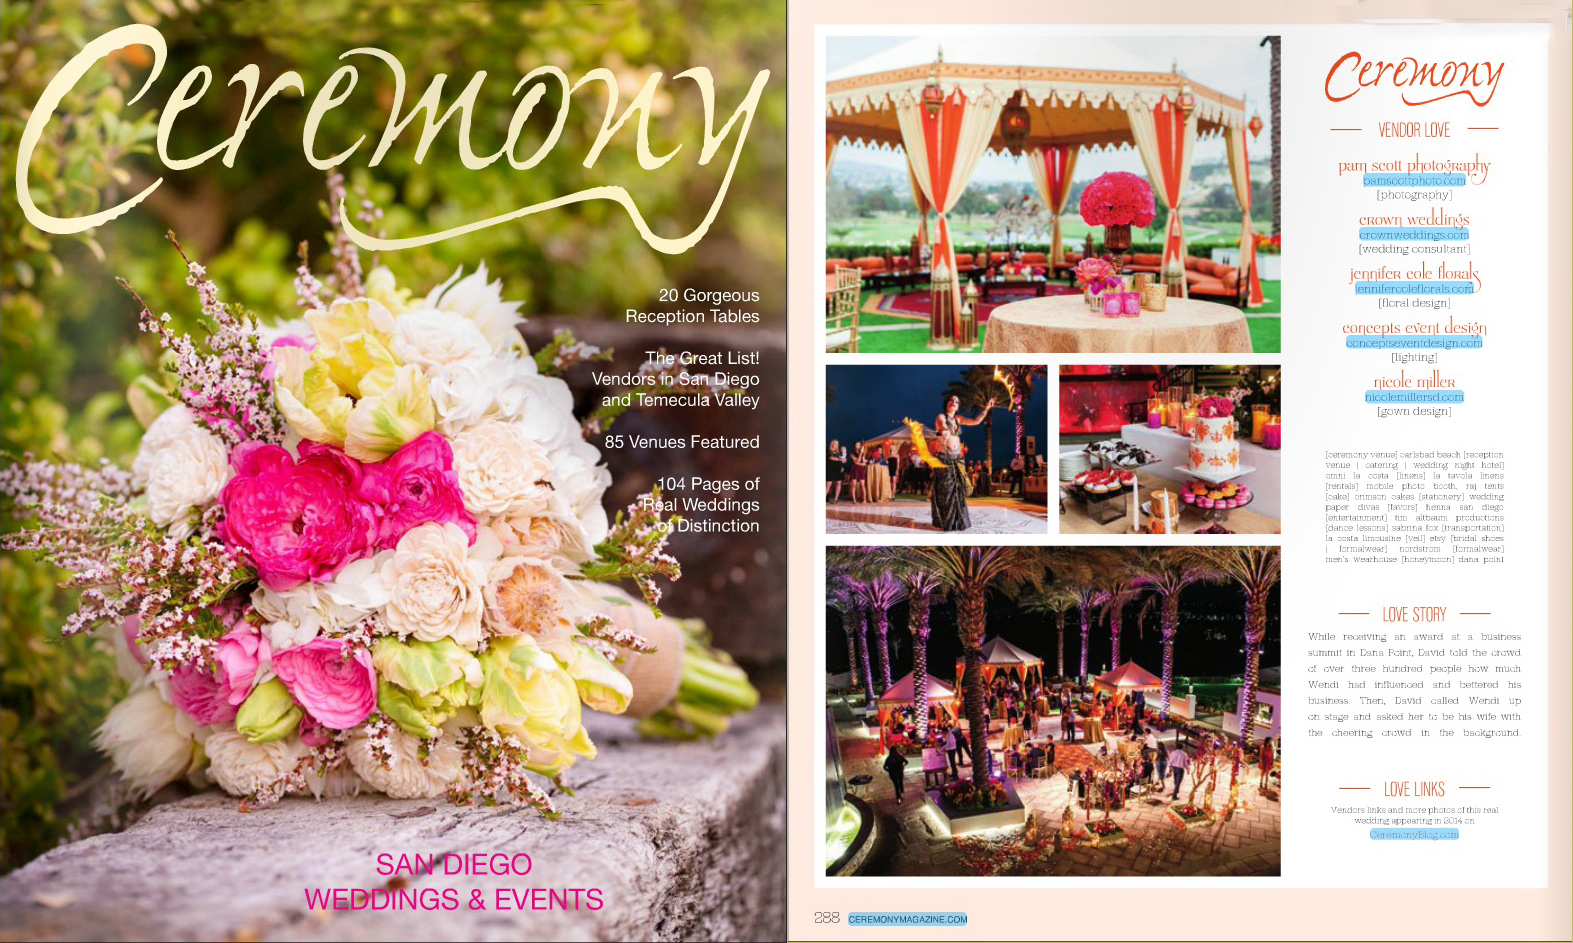 Ceremony-Cover-and-single-page.jpg